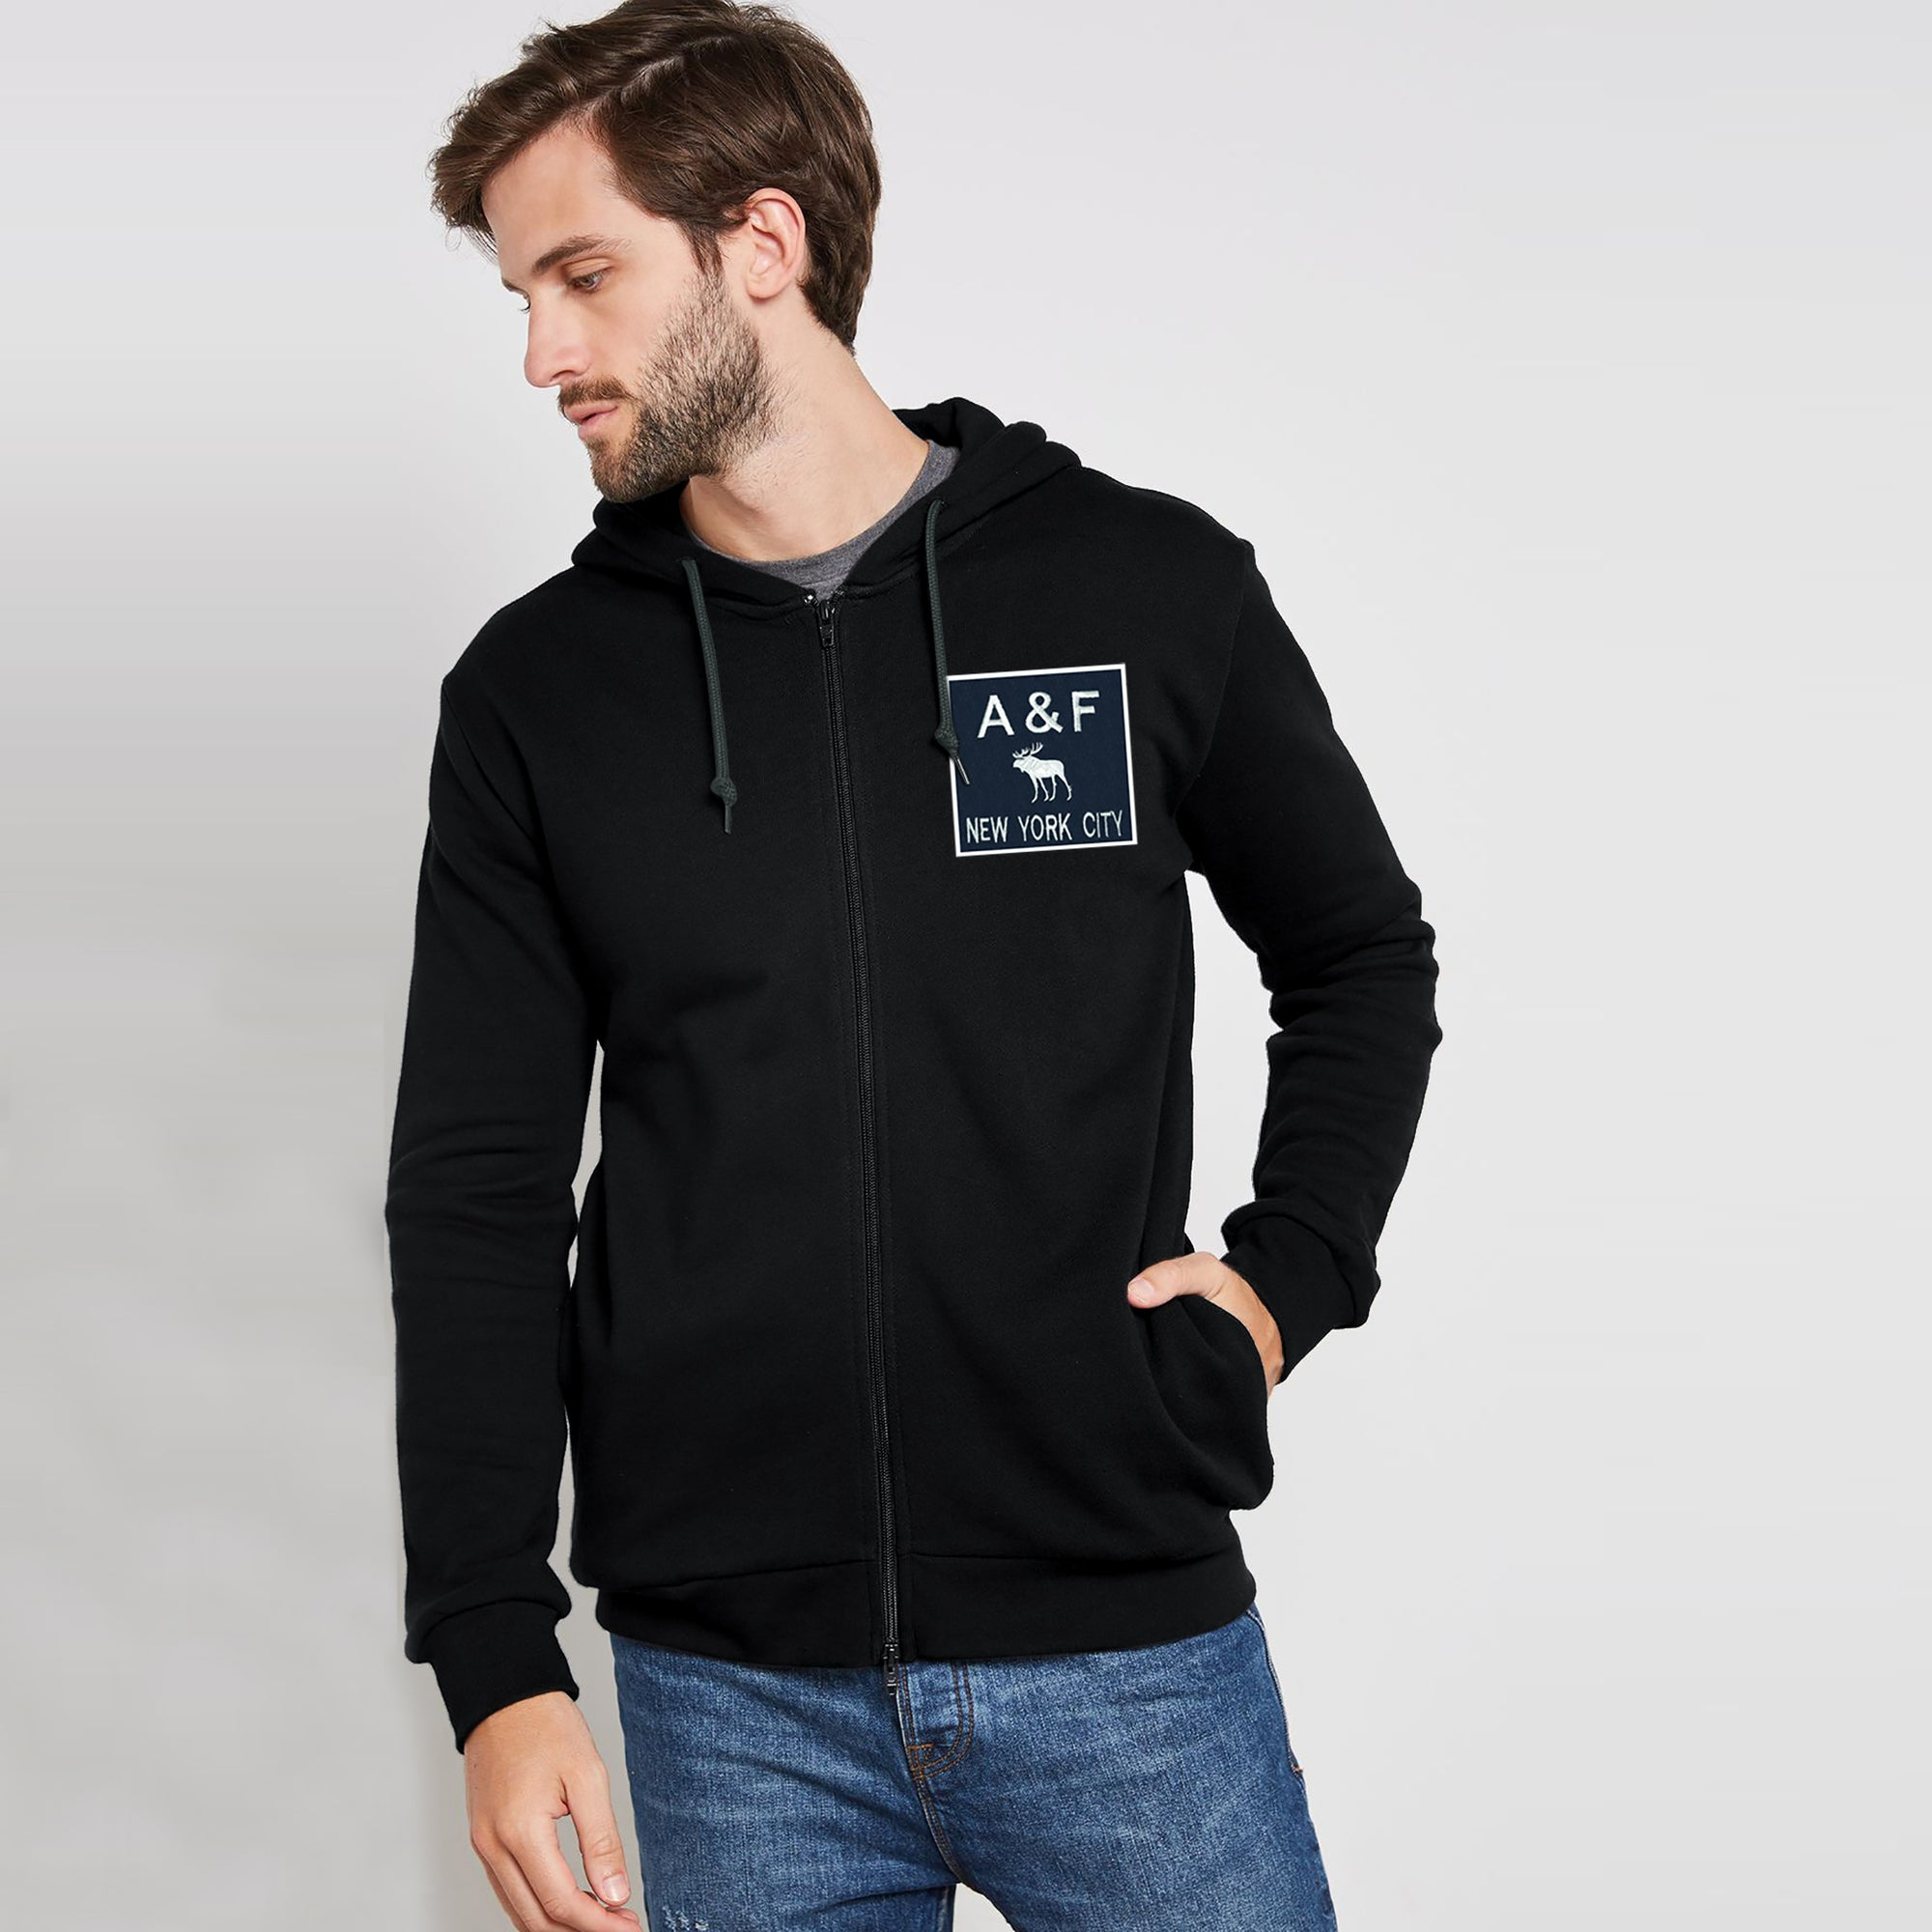 A&F Terry Fleece Zipper Hoodie For Men-Black-BE7905